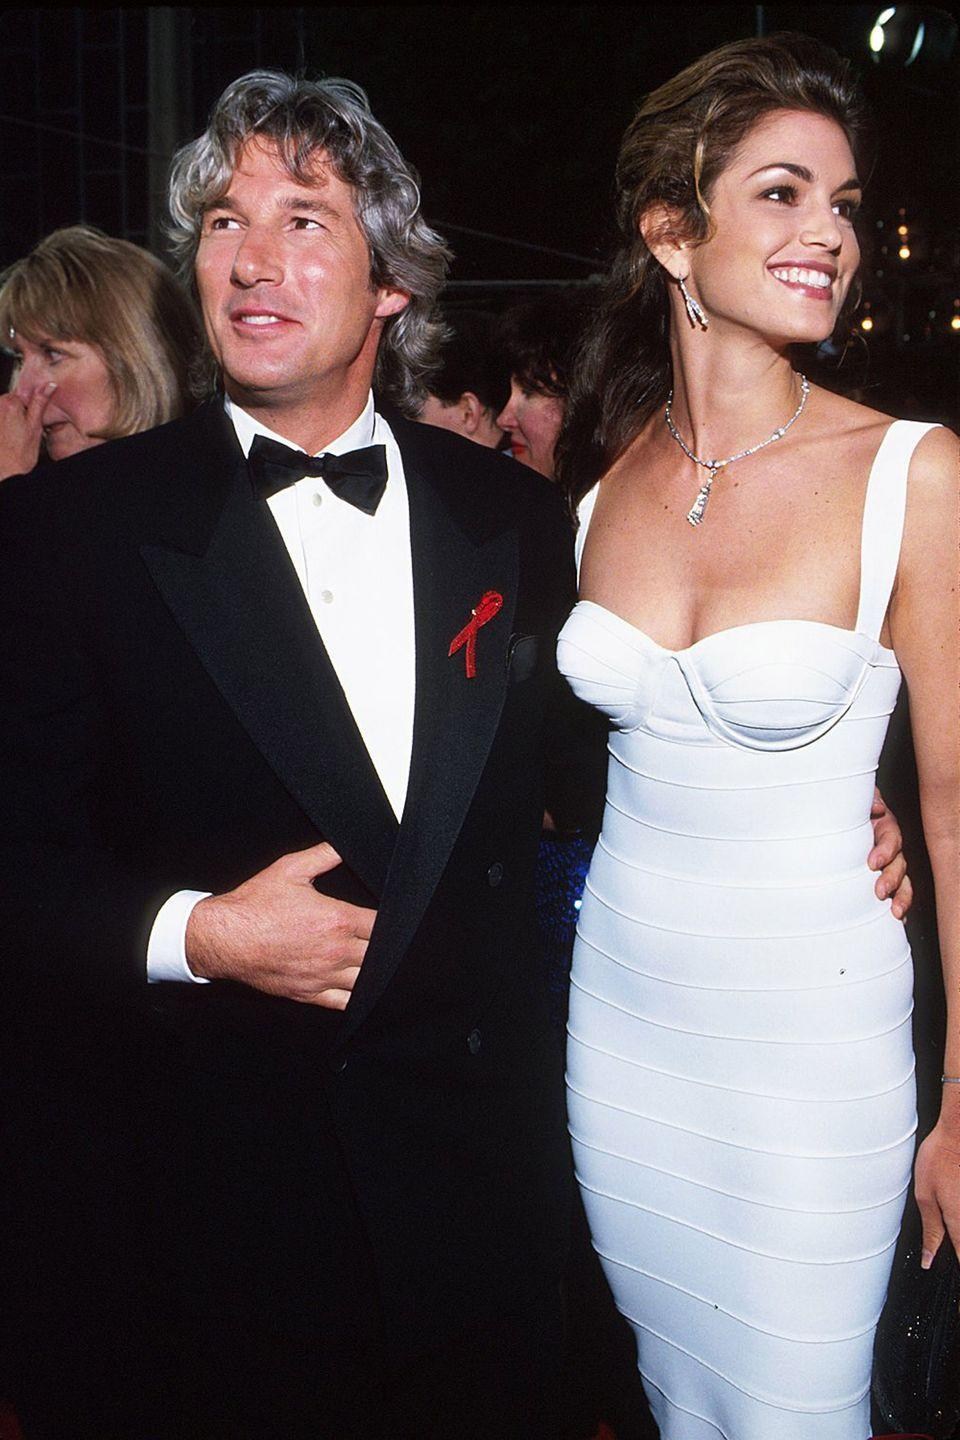 <p>What's a supermodel to wear to her first Academy Awards? A body-hugging Herve Leger dress to show off her enviable figure if you're Cindy Crawford. </p>